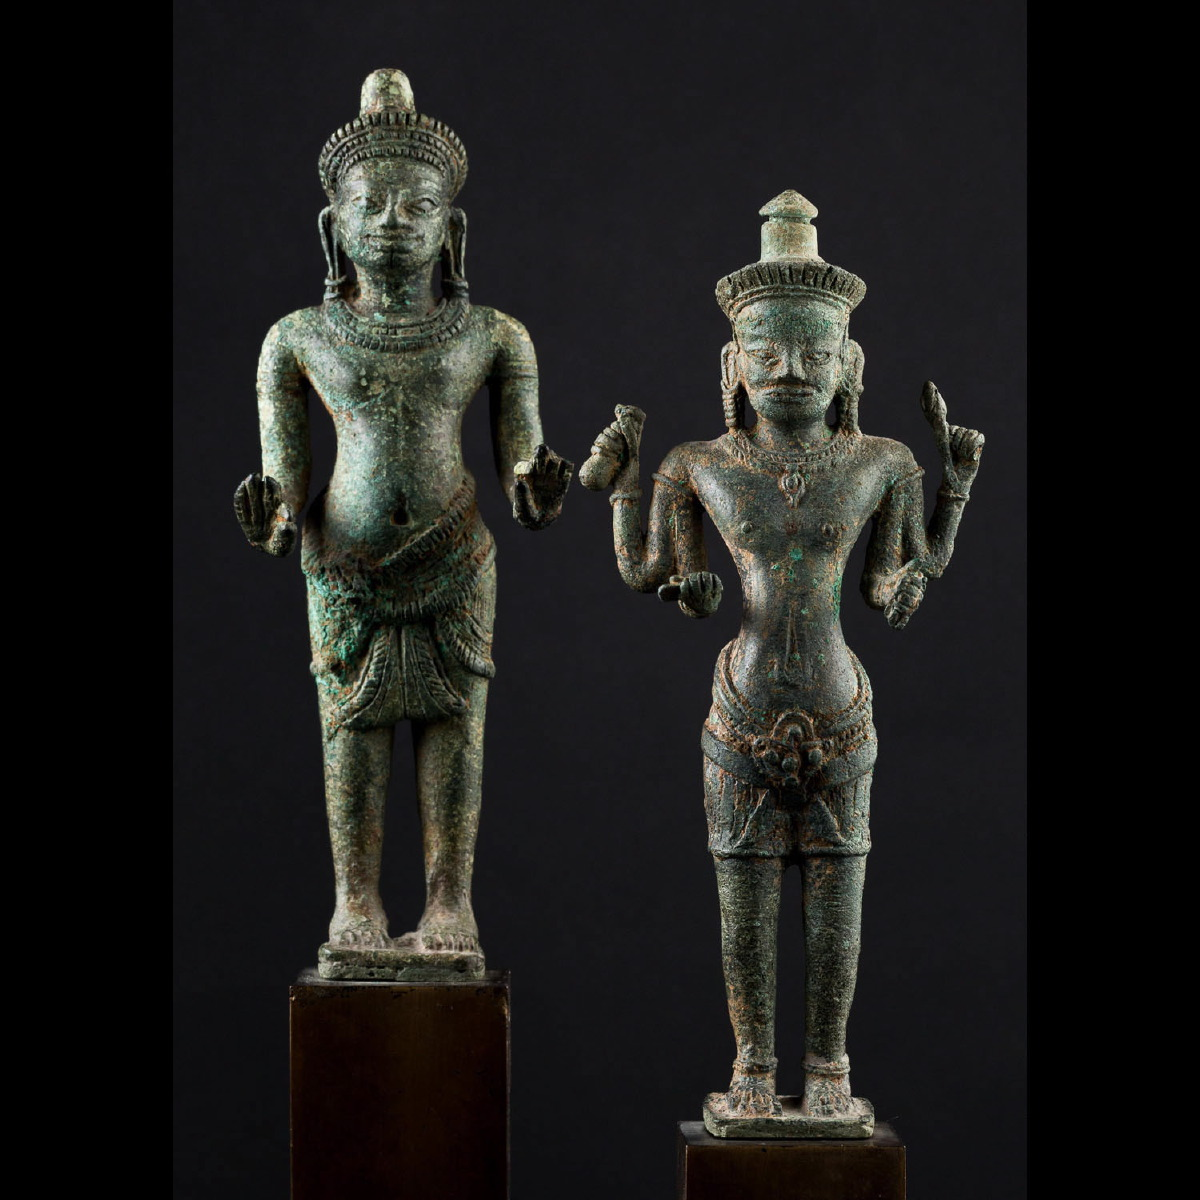 Photo of deities-angkor-vat-kmer-cambodia-galerie-golconda